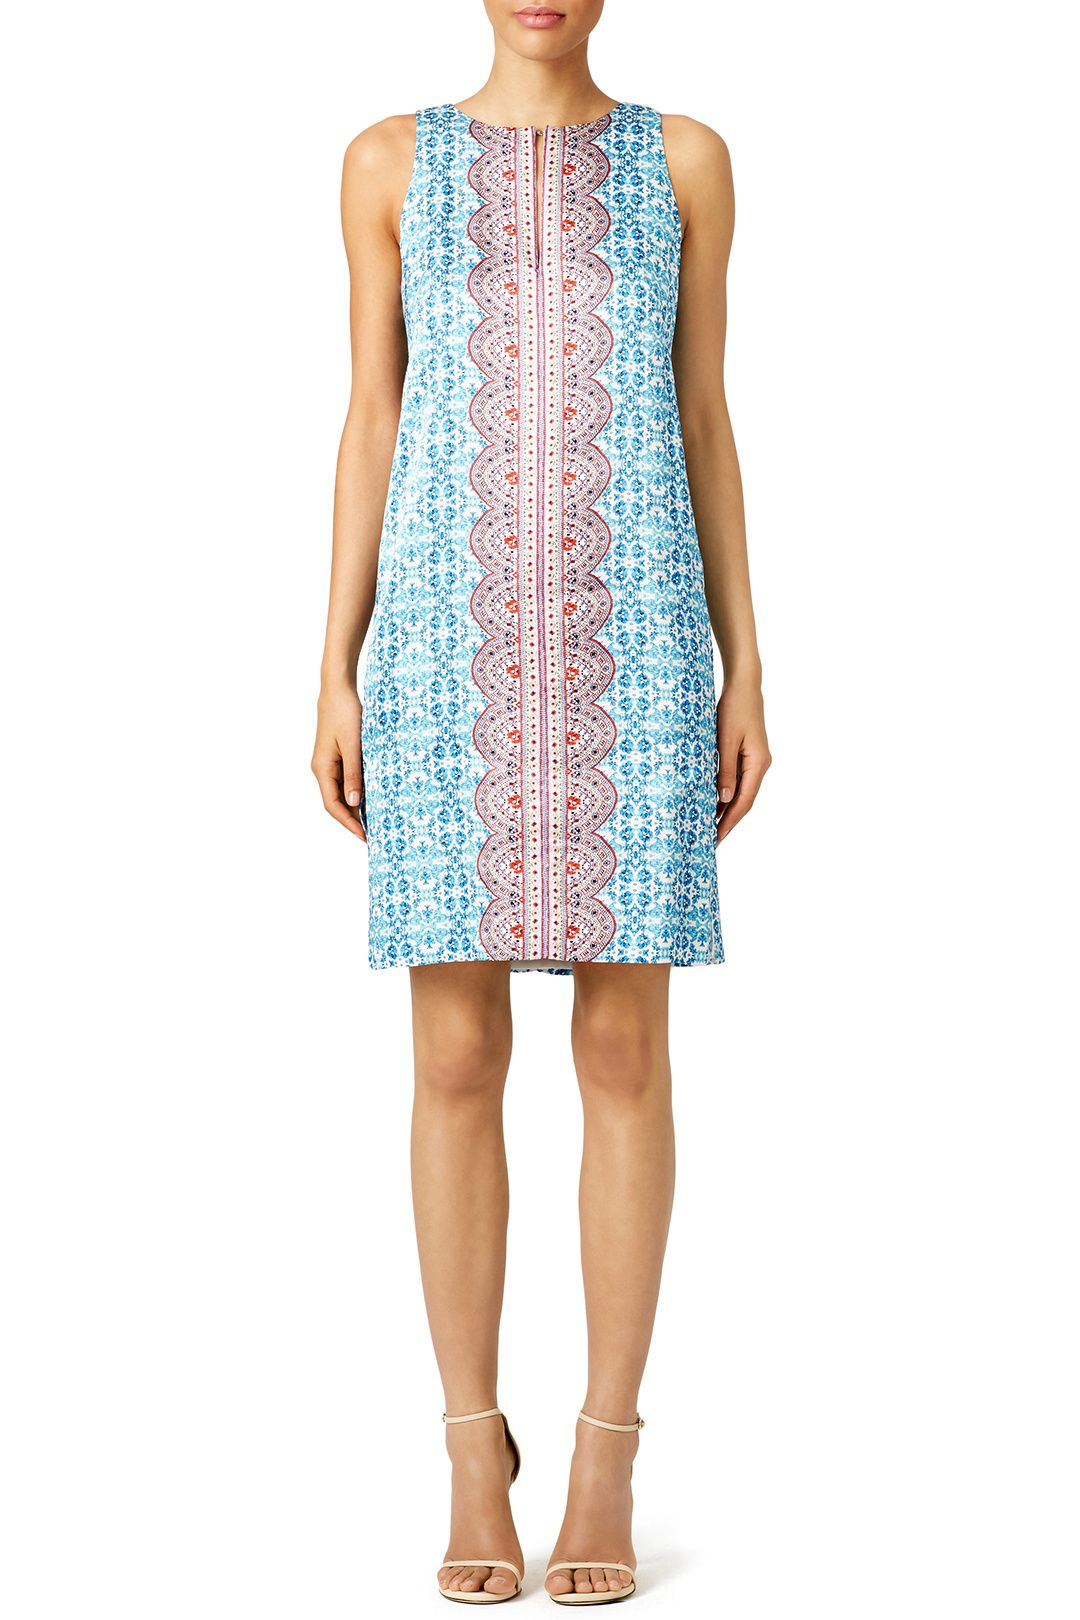 26287771f5e2 Nanette Lepore Blue Porcelain Print Shift Dress This blue shift dress with  red detail is perfect for a summer engagement party!